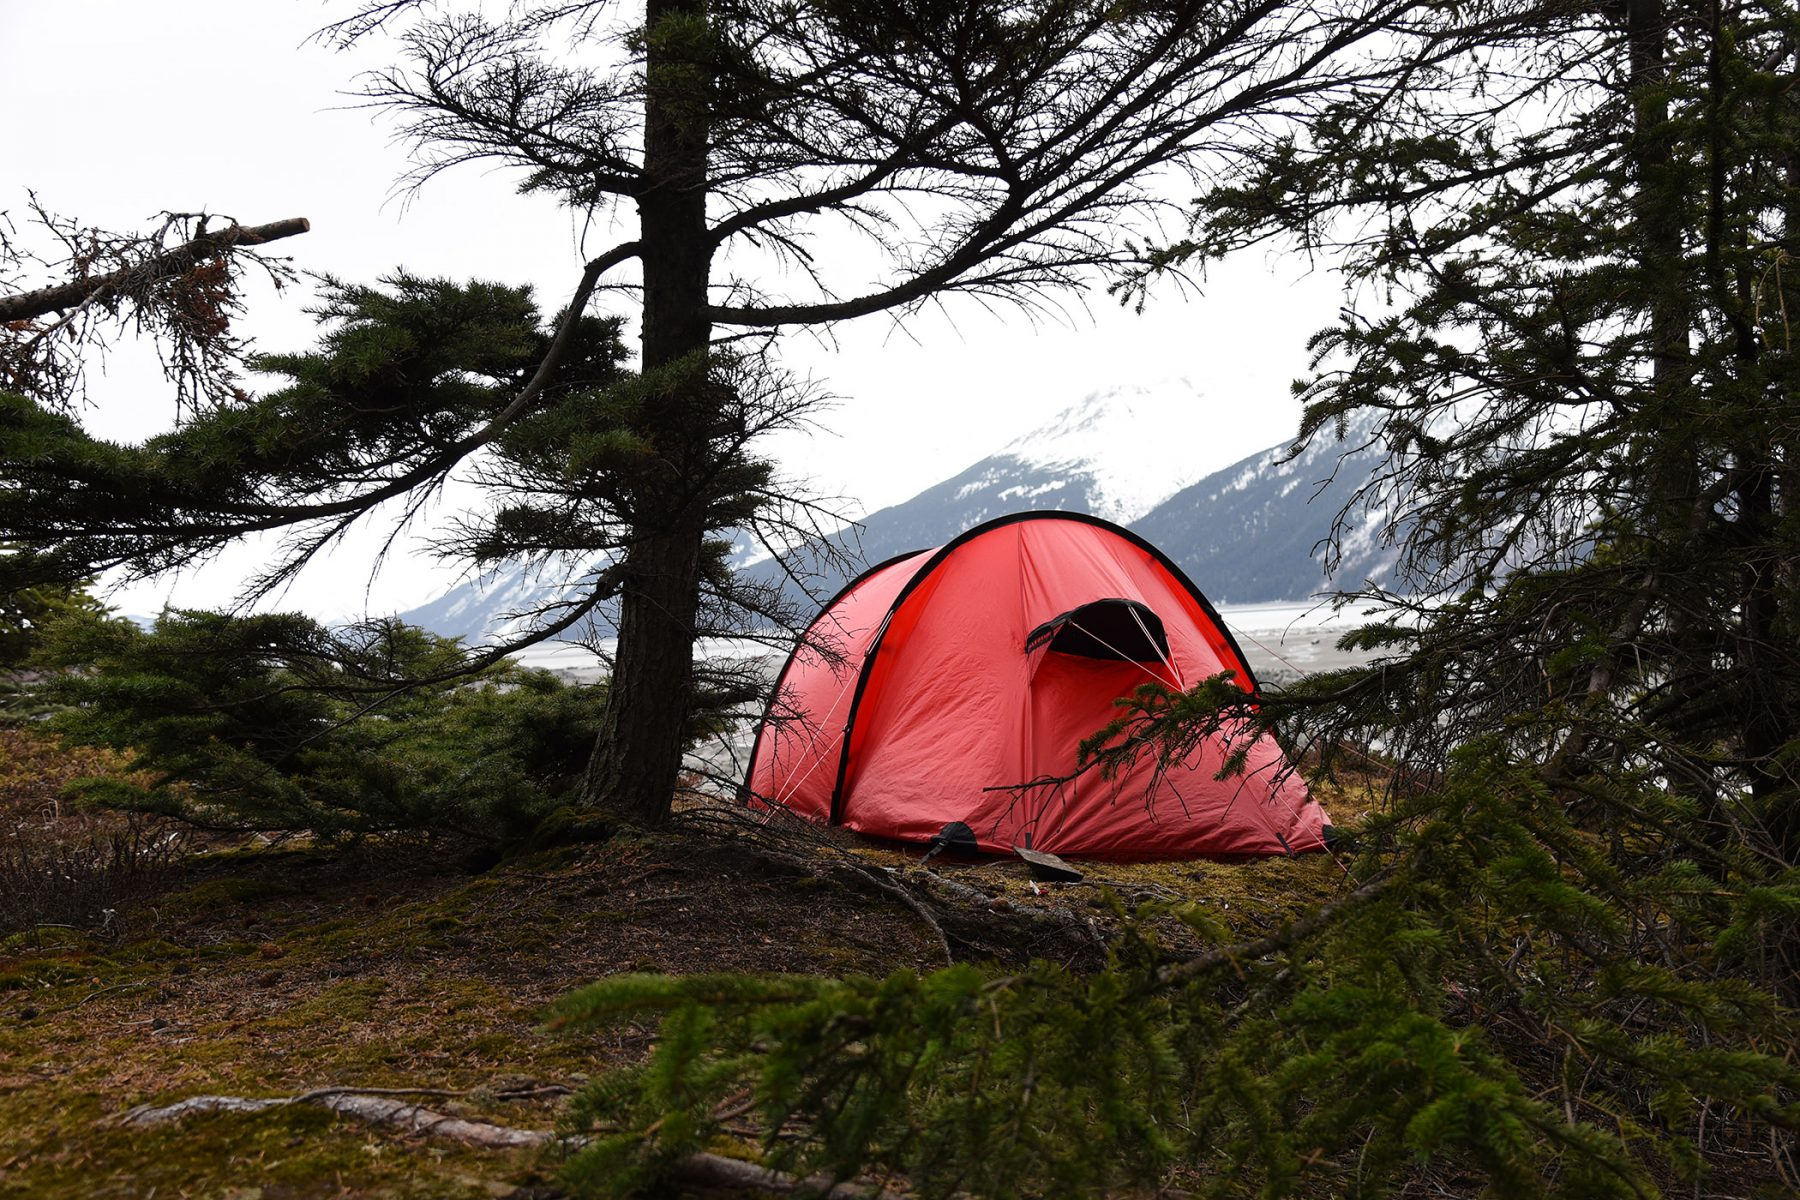 Hilleberg Nammatj 2 on in the trees next to Turnagain Arm